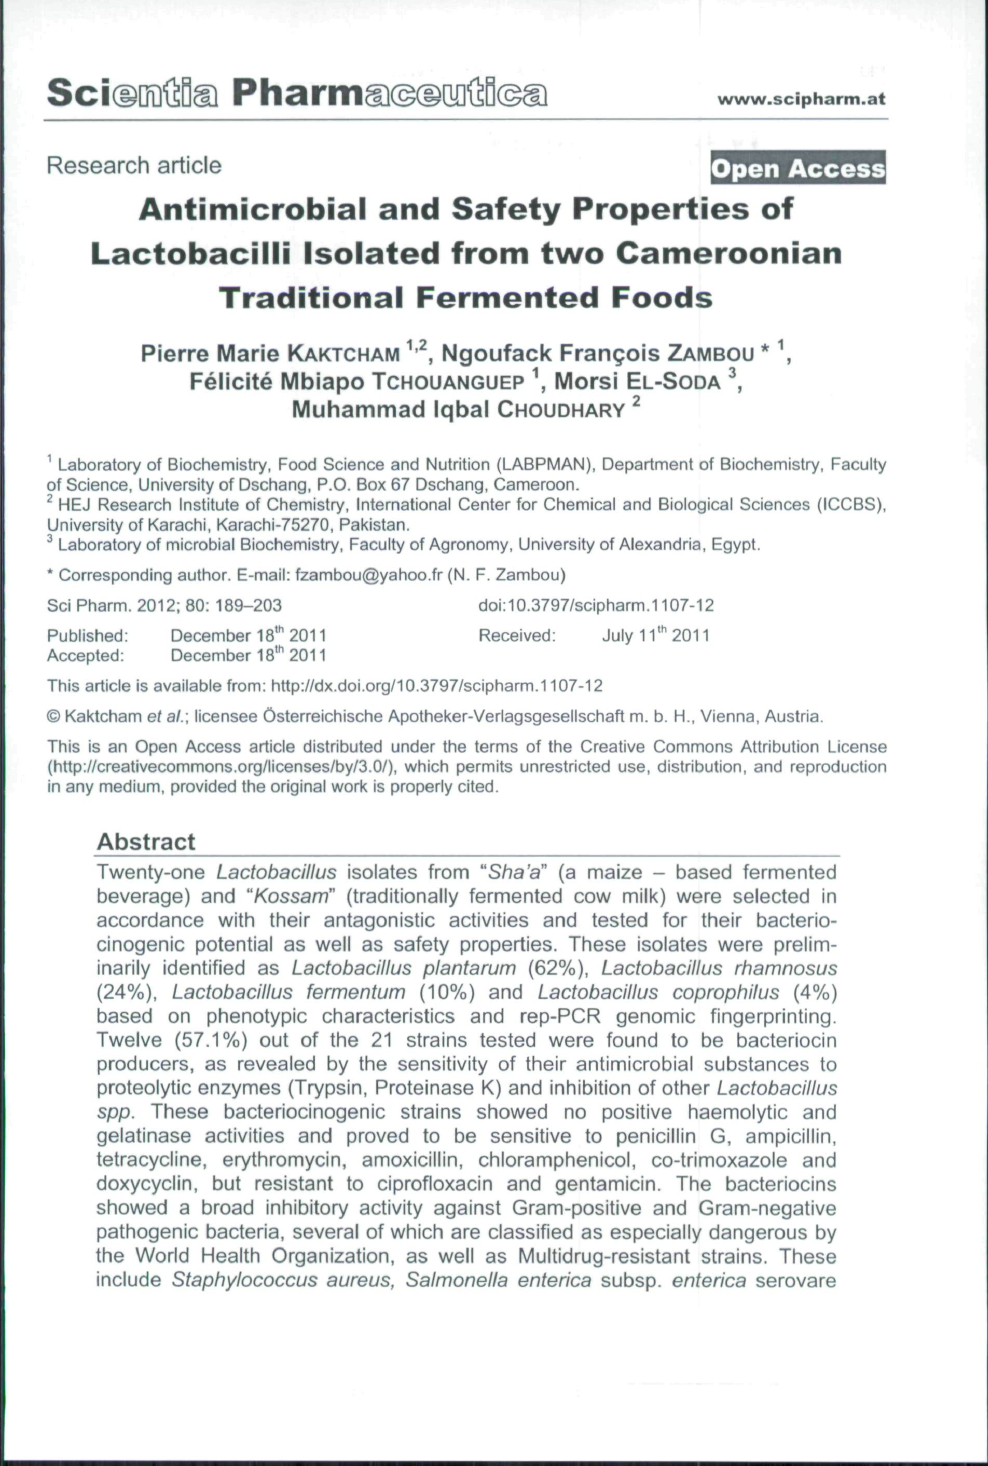 Antimicrobial and Safety Properties of Lactobacilli Isolated from